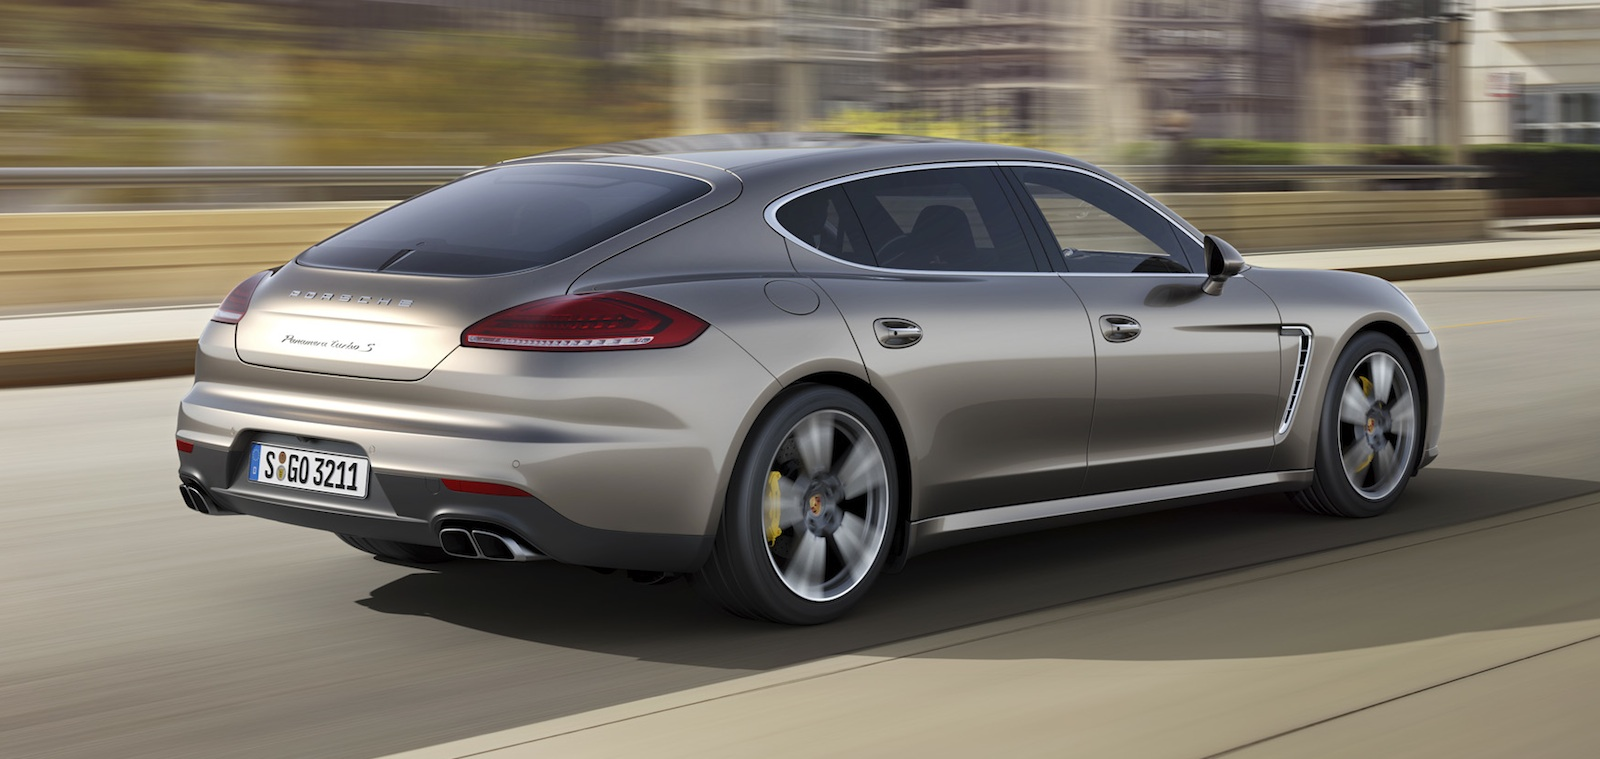 porsche panamera turbo s 420kw flagship sedan here in february photos 1 of 5. Black Bedroom Furniture Sets. Home Design Ideas